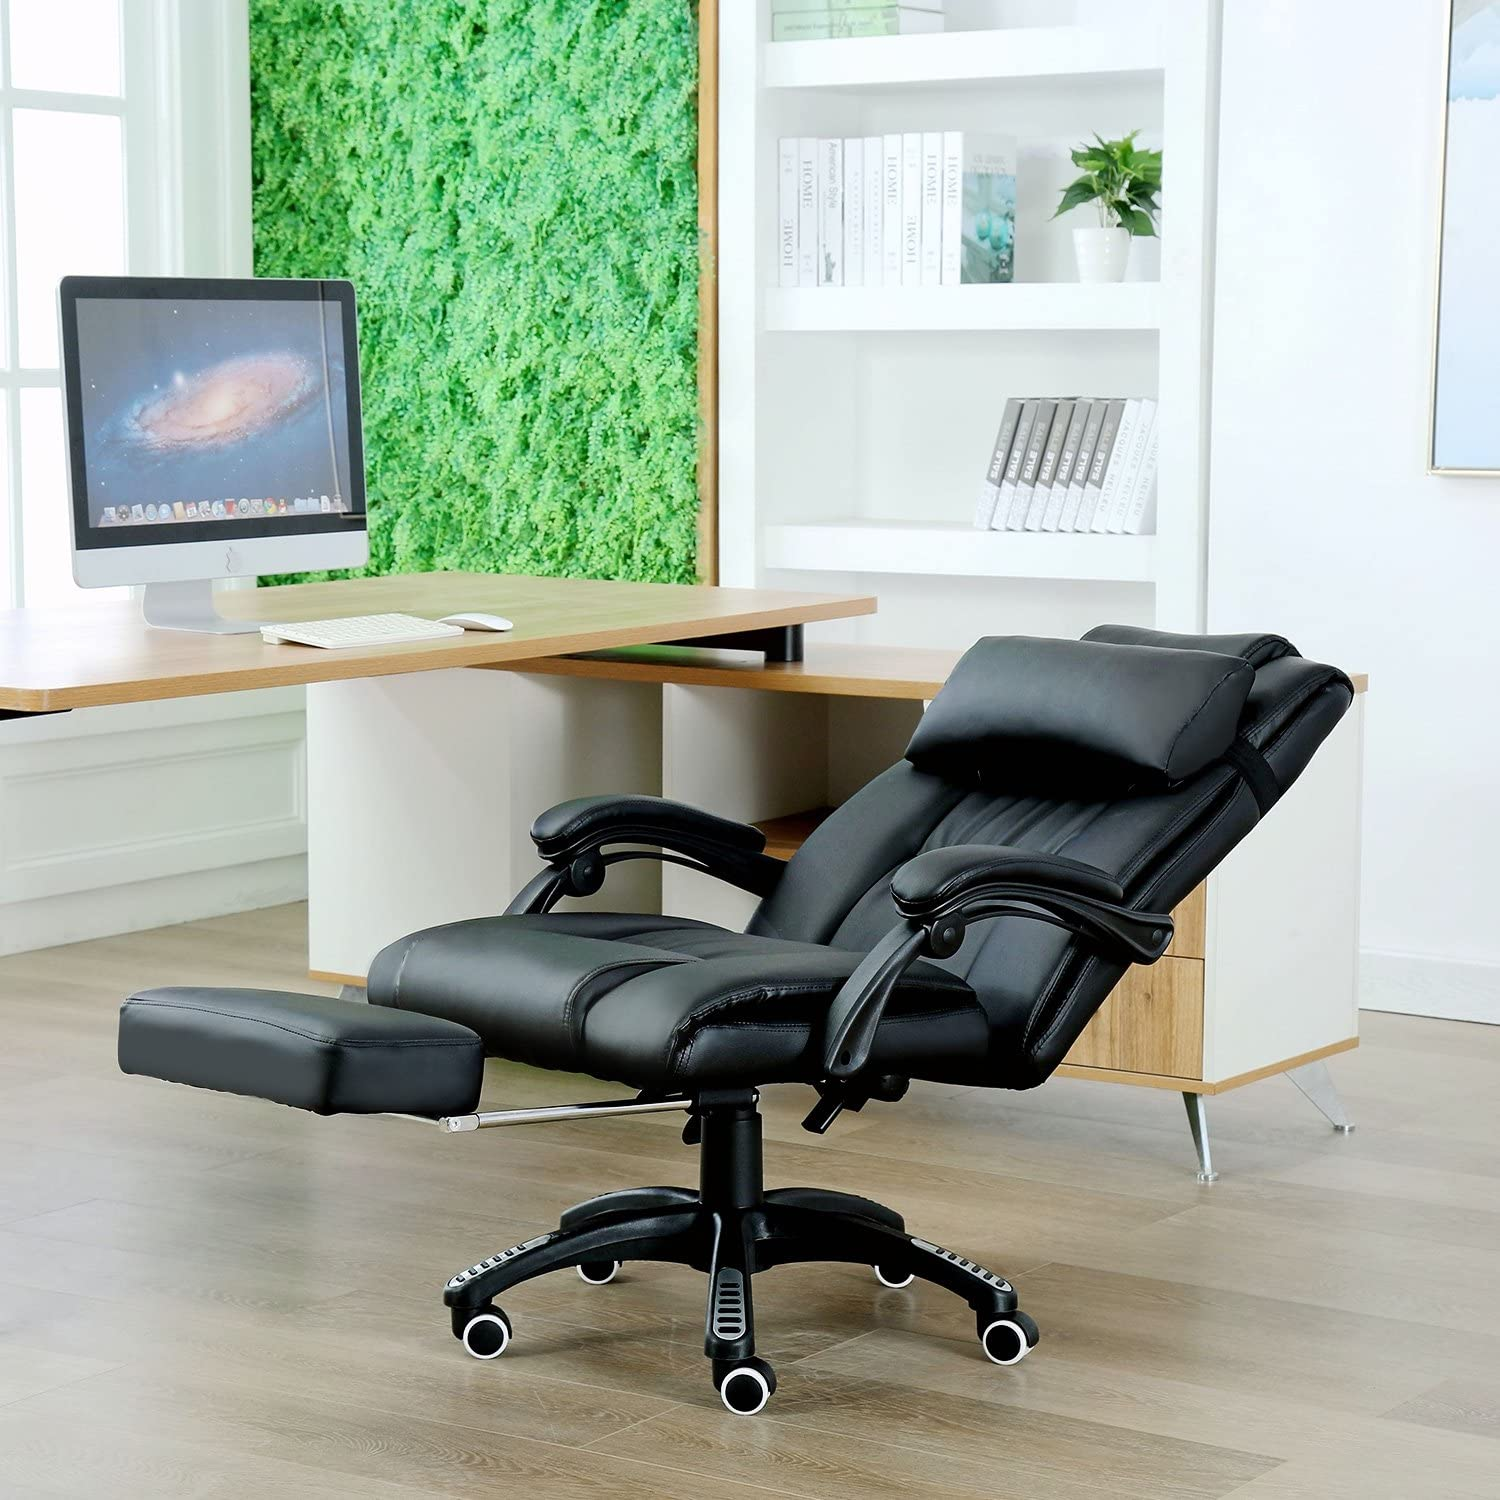 Top 5 Executive Office chairs with reclining function and